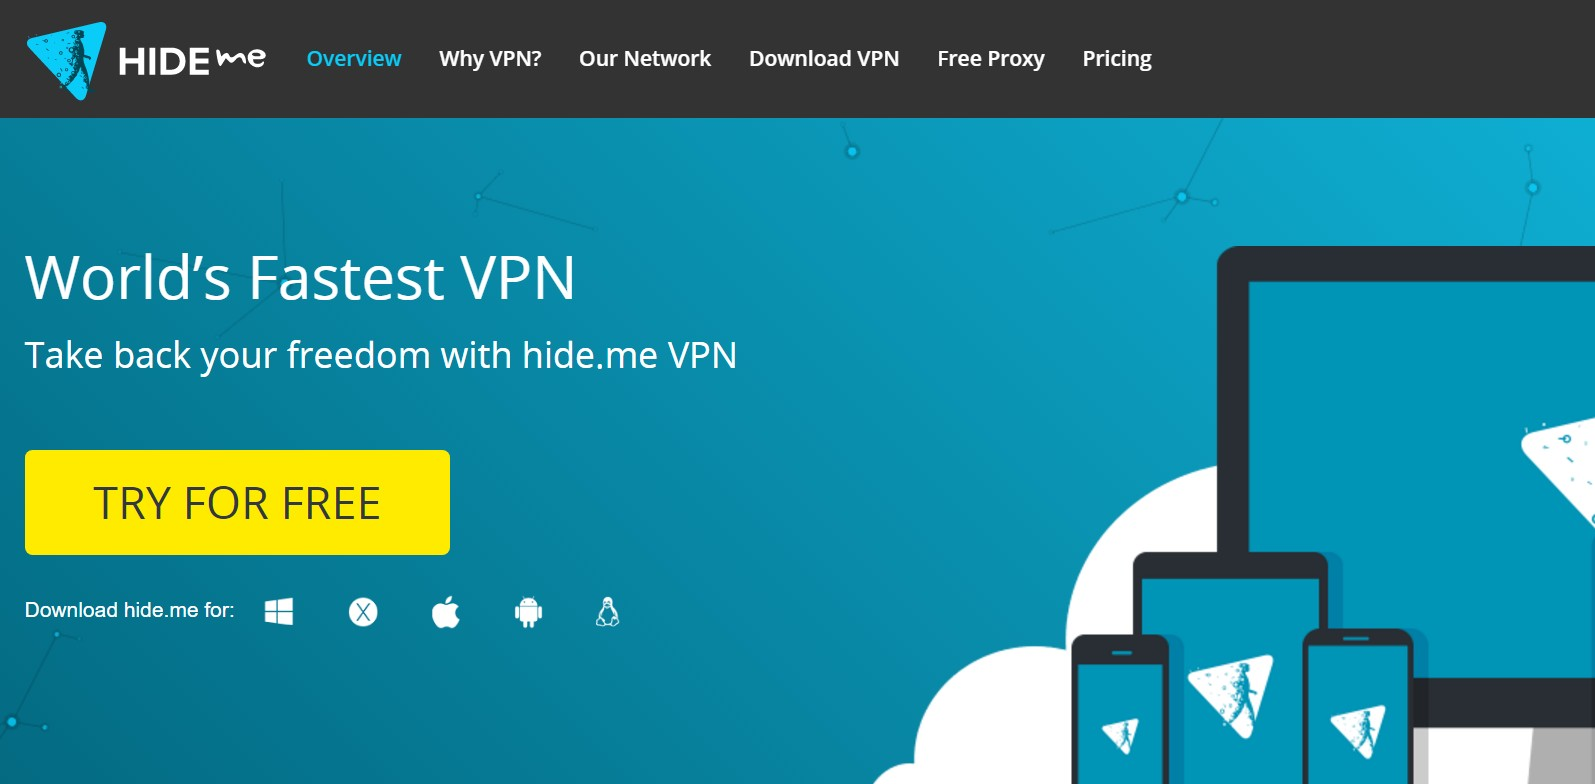 Hide.me home page - Best Cheap And Affordable VPN Services